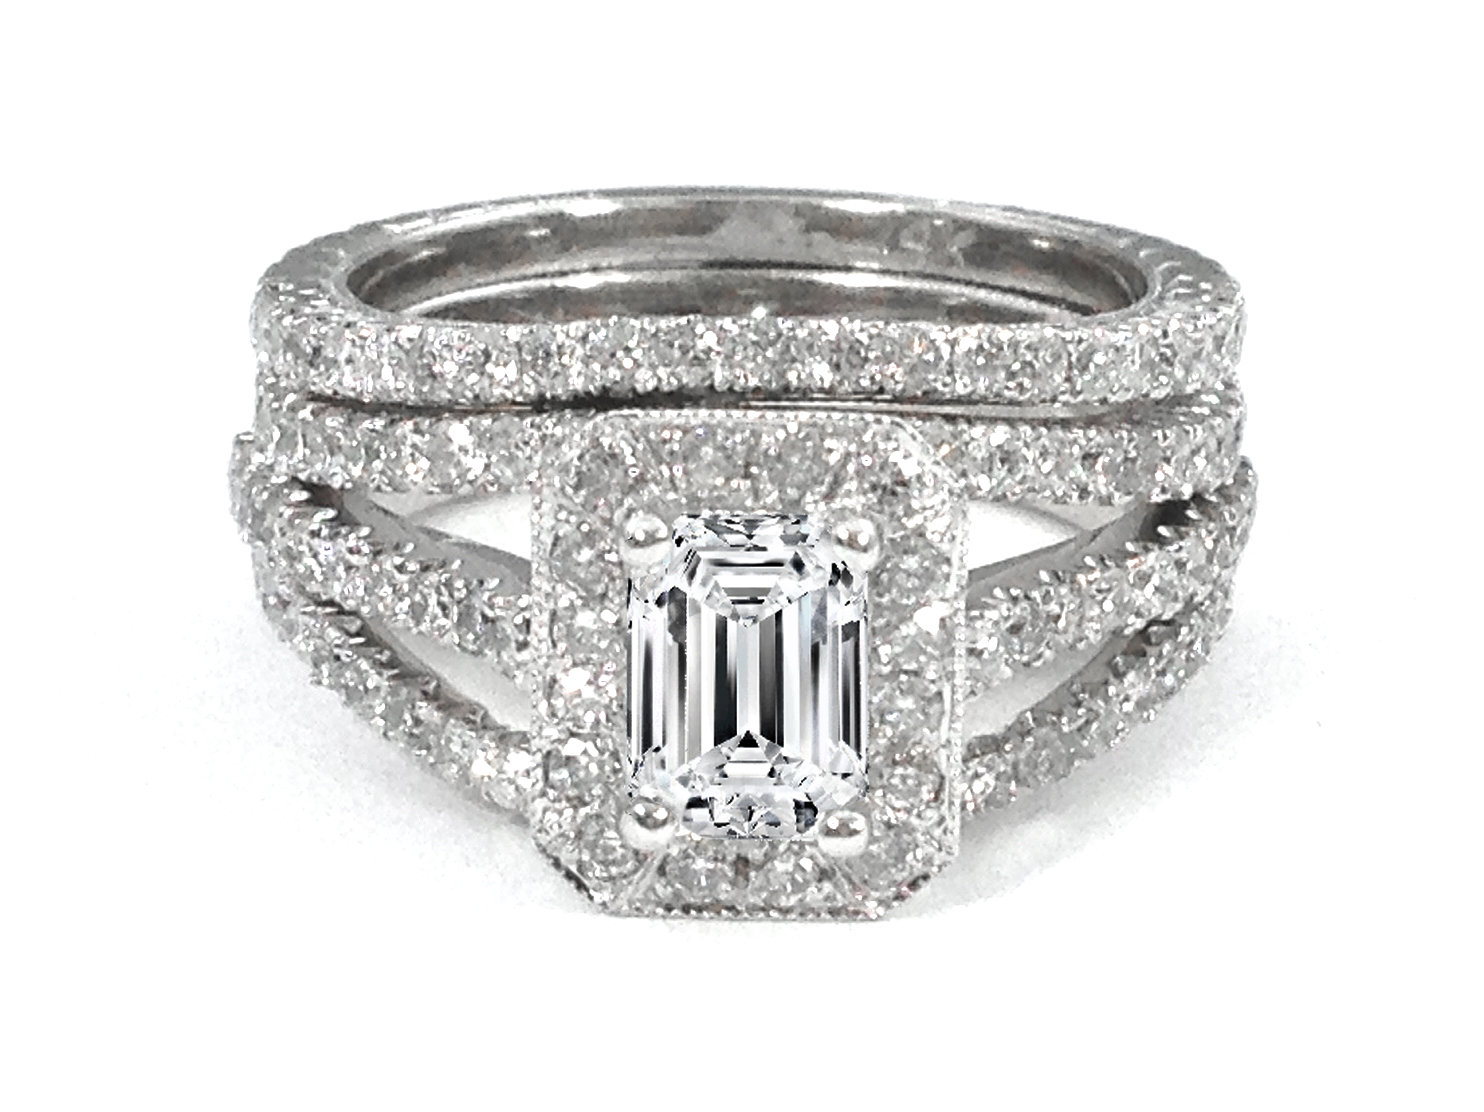 Trio Band Emerald Cut Diamond Engagement Ring & Matching Wedding Band